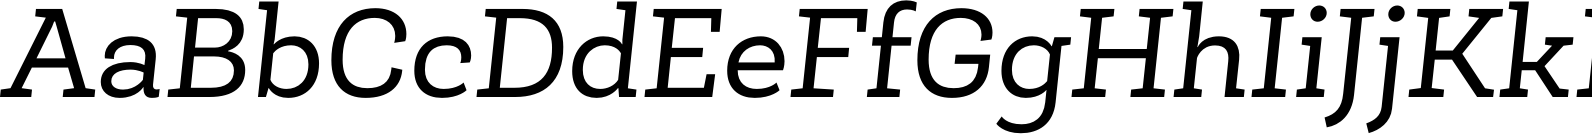 Roble Italic Font